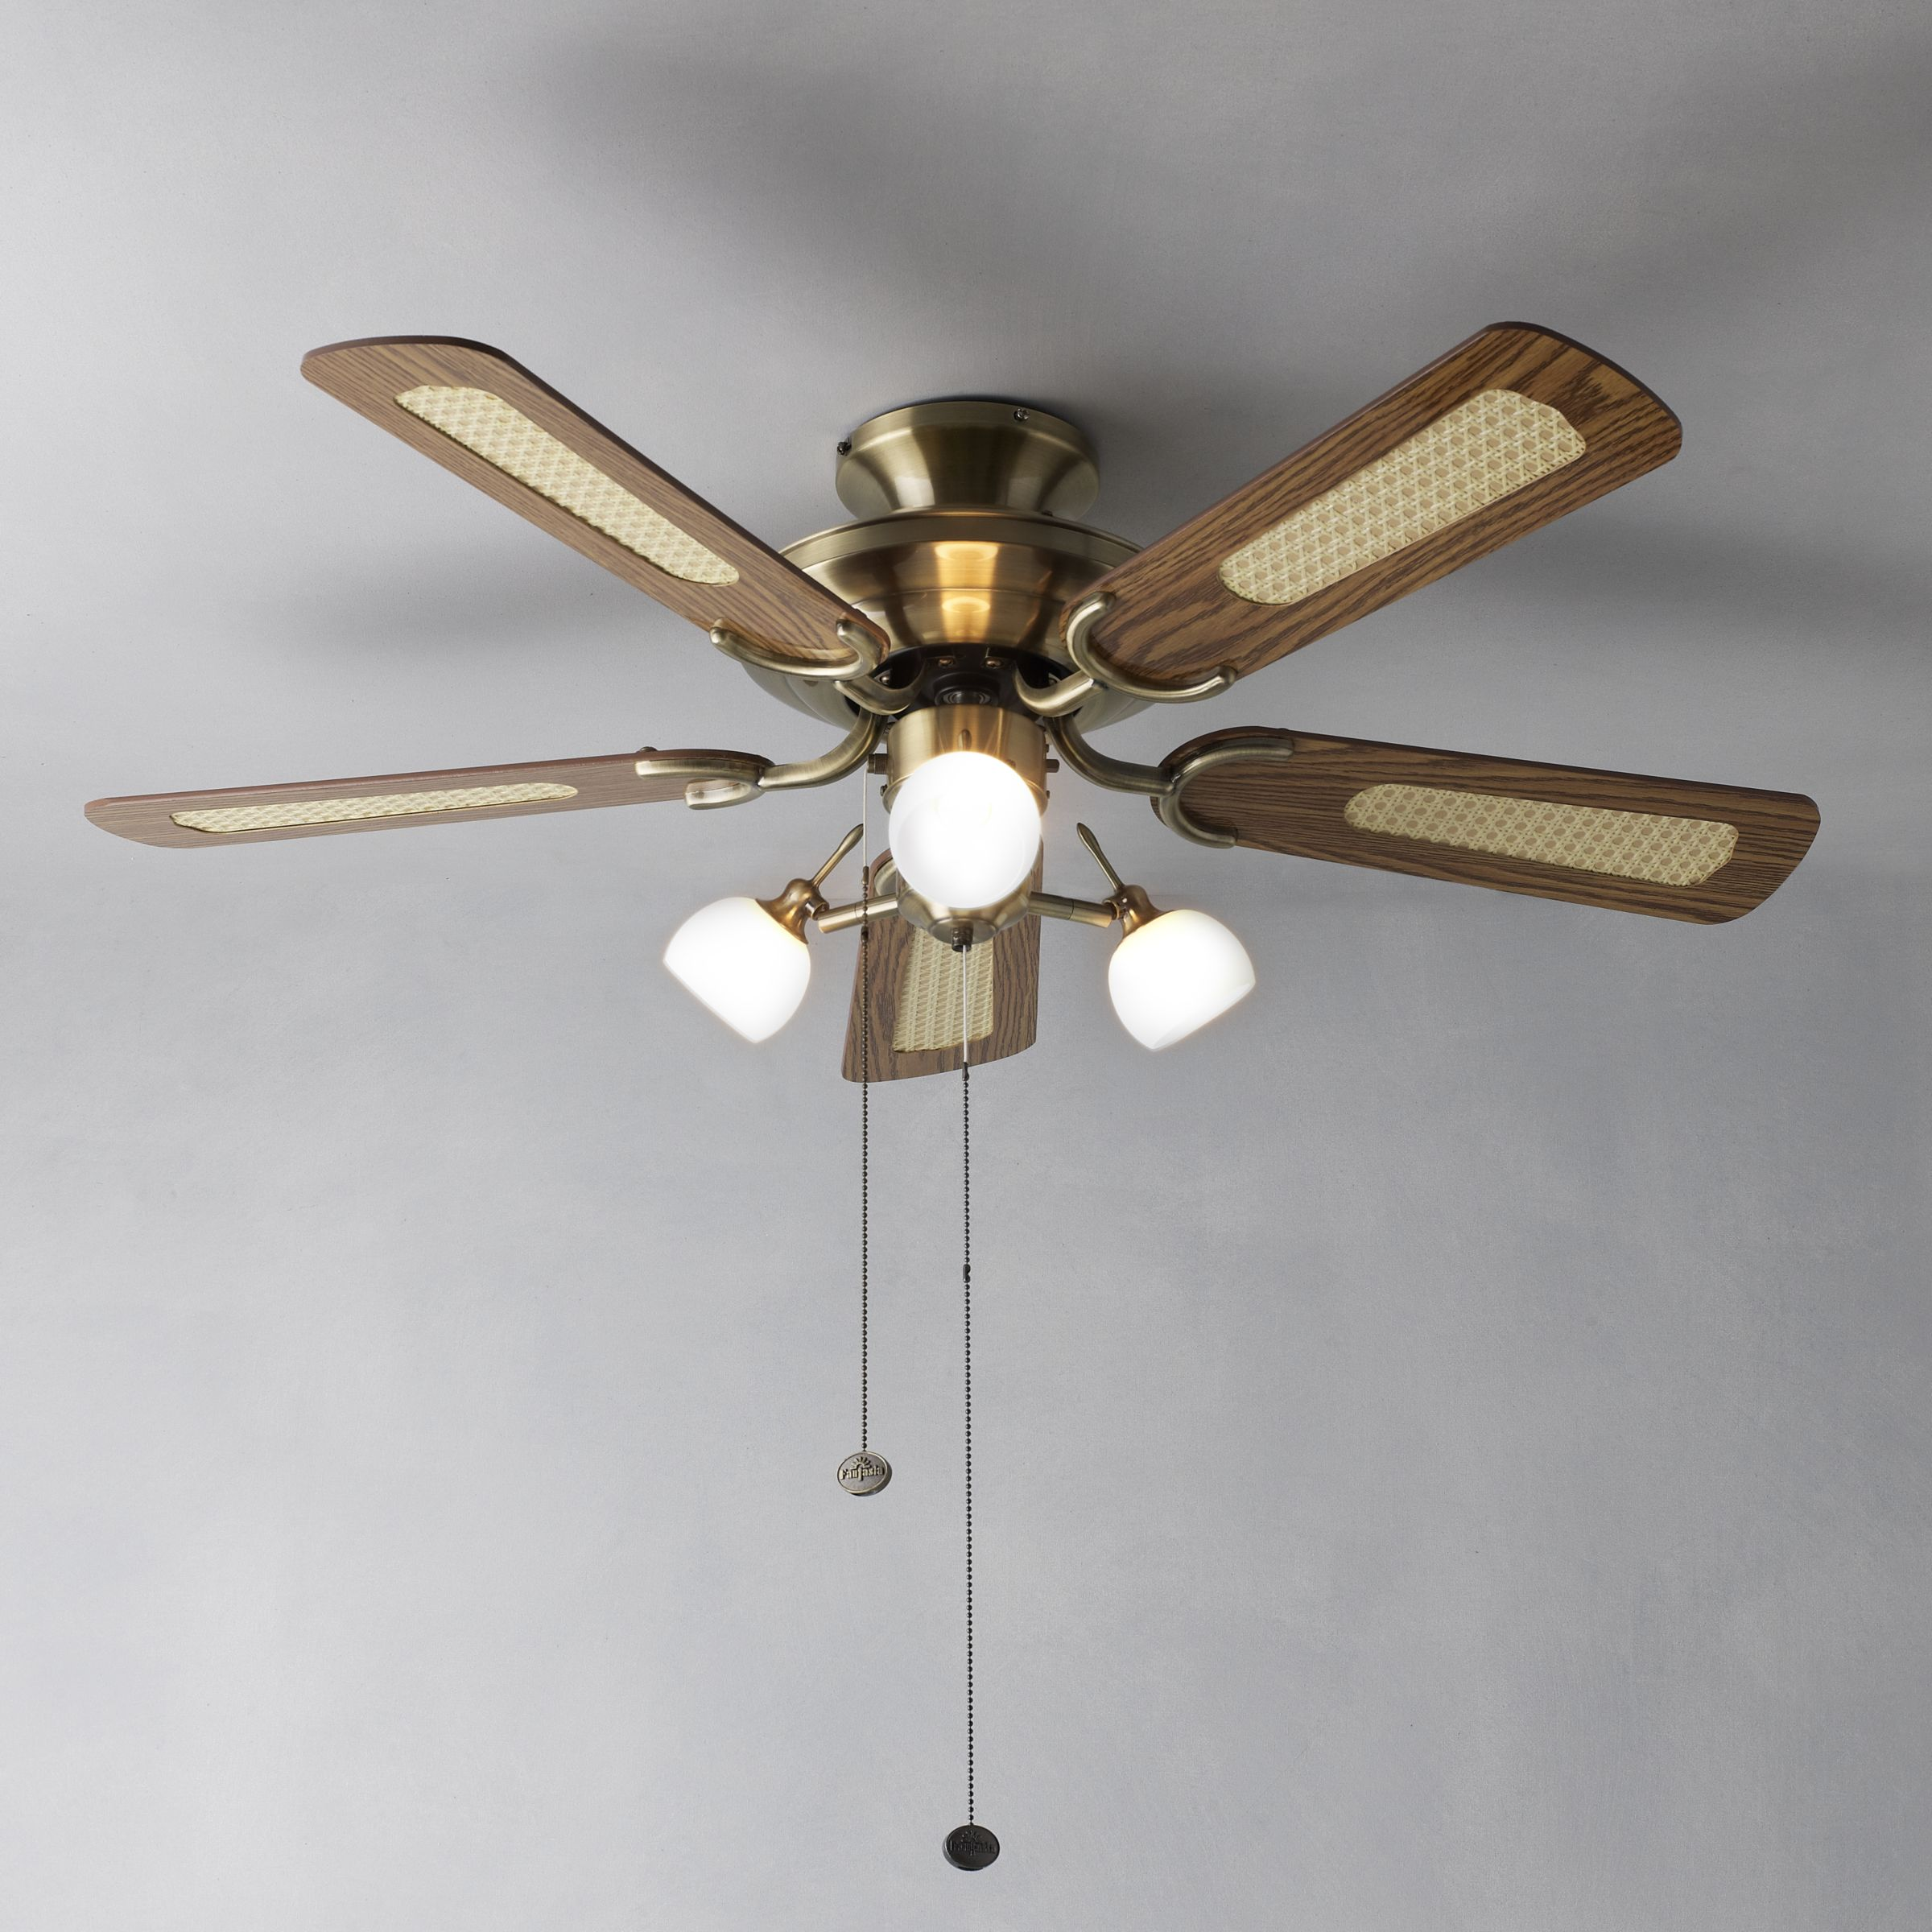 John Lewis Ceiling Lights Antique Brass : Buy fantasia mayfair ceiling fan and light antique brass